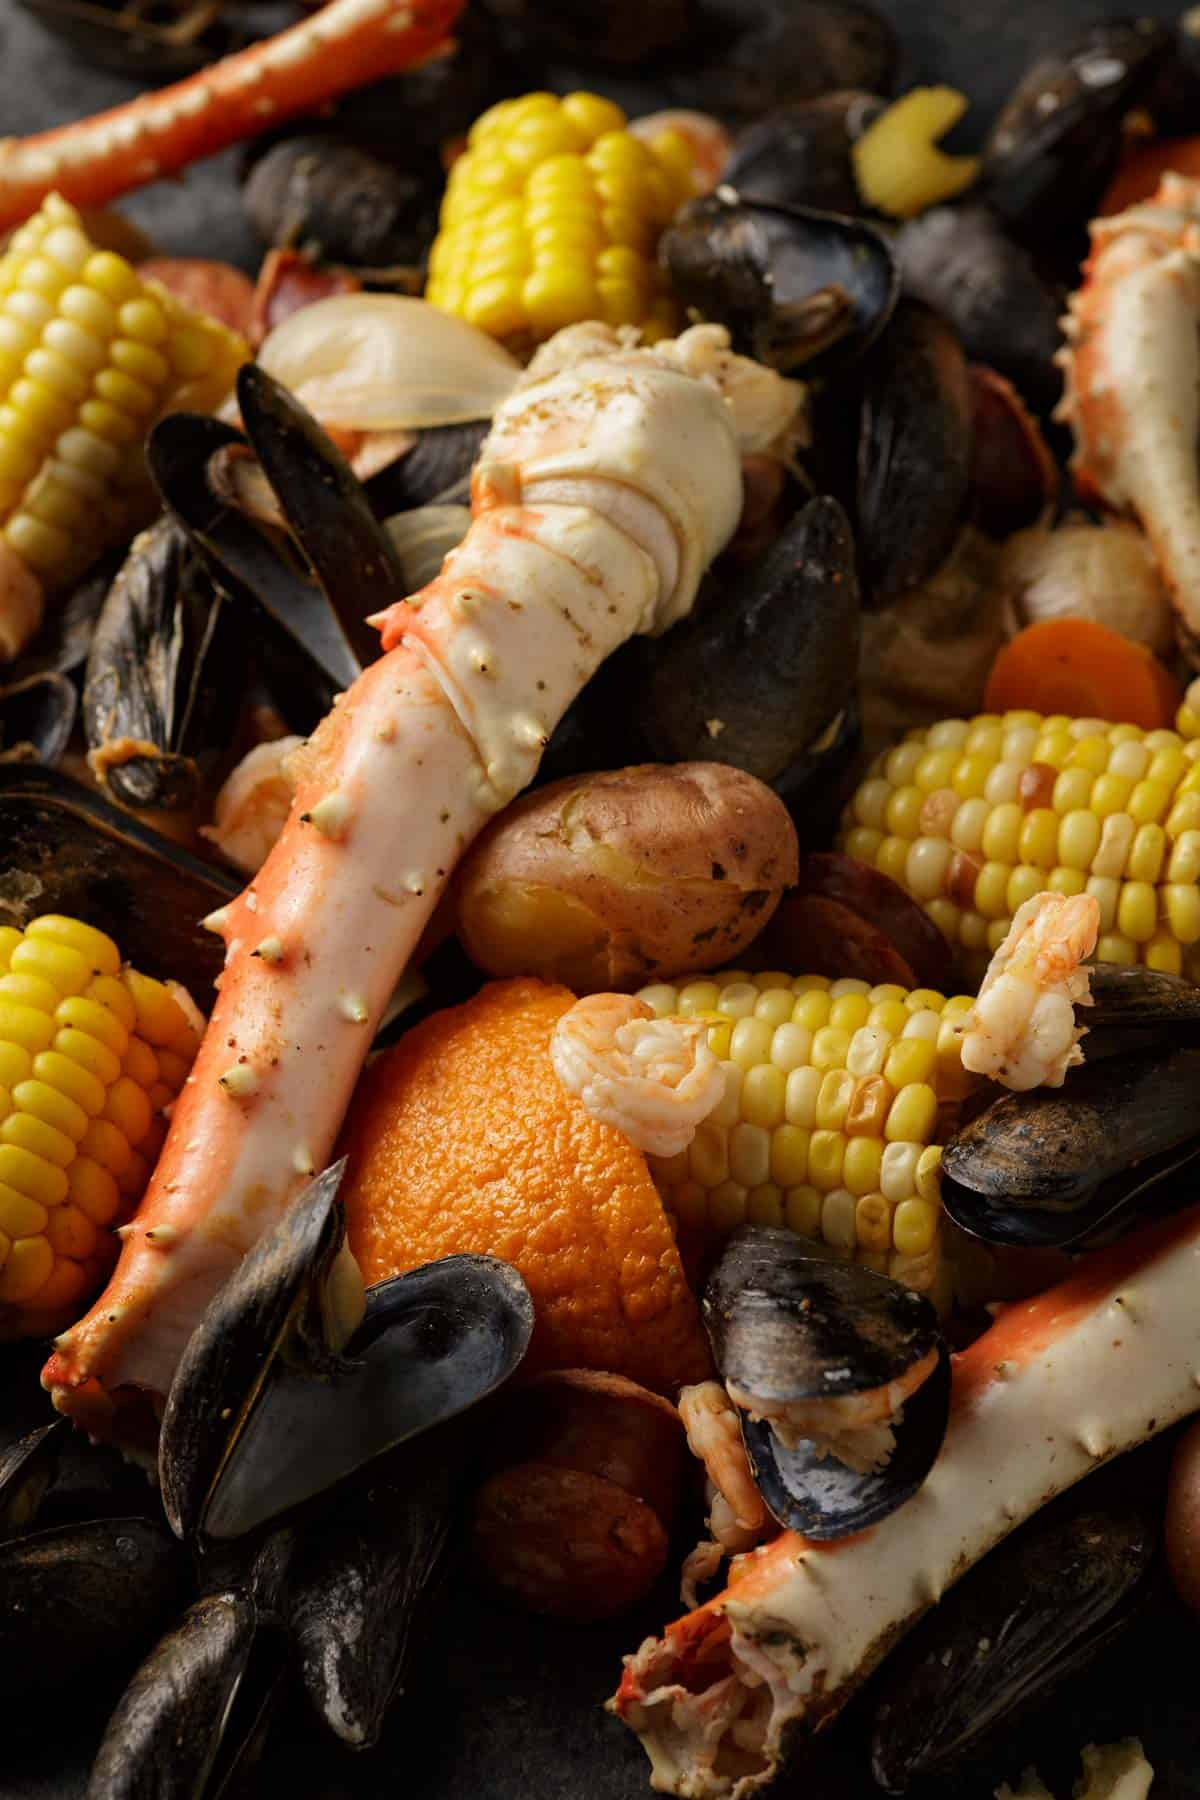 Crab legs and corn with mussels and shrimp on a platter